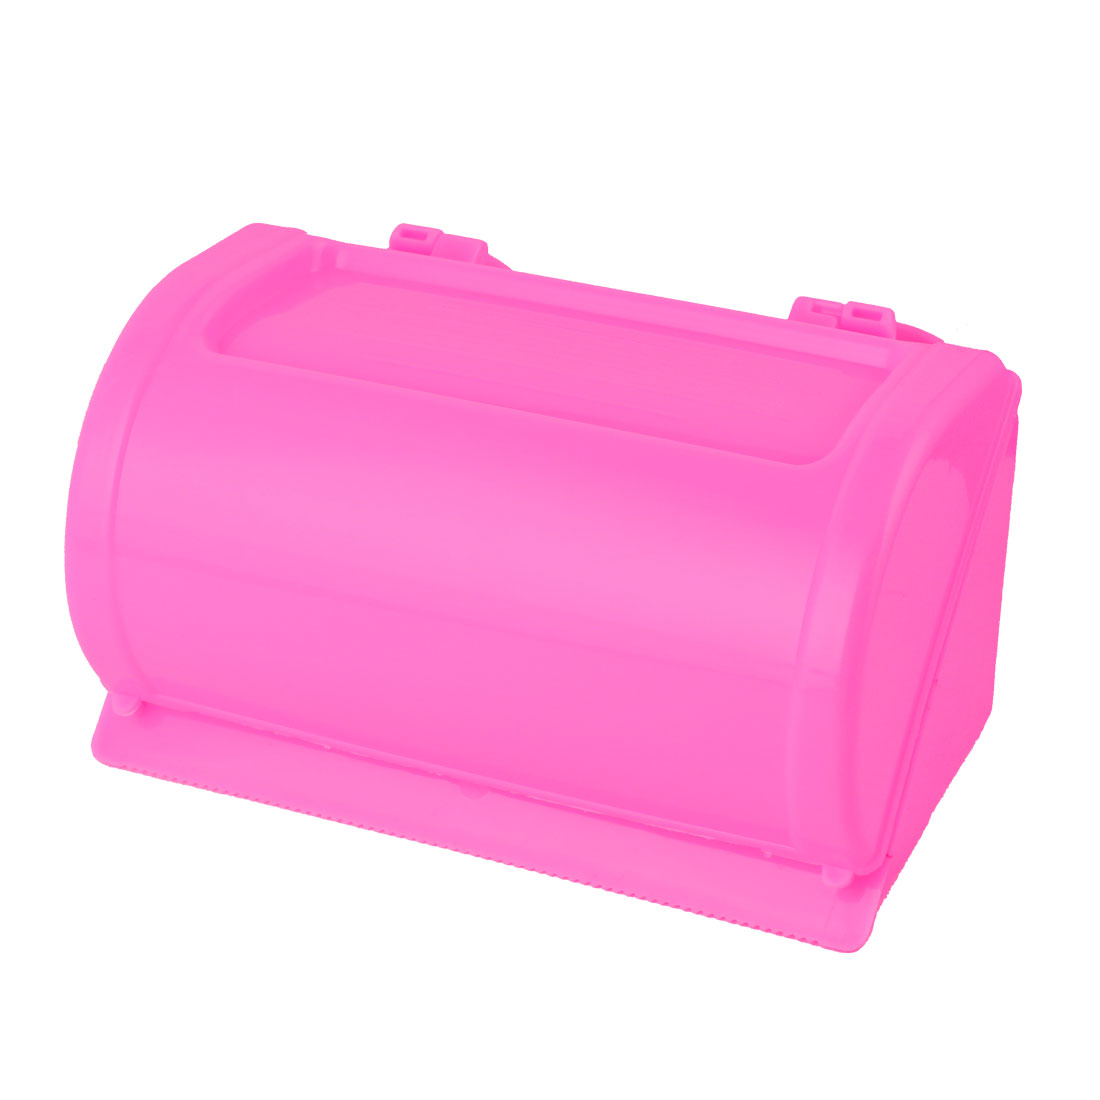 Bathroom Plastic Rectangle Suction Cup Toilet Roll Paper Tissue Holder Fuchsia